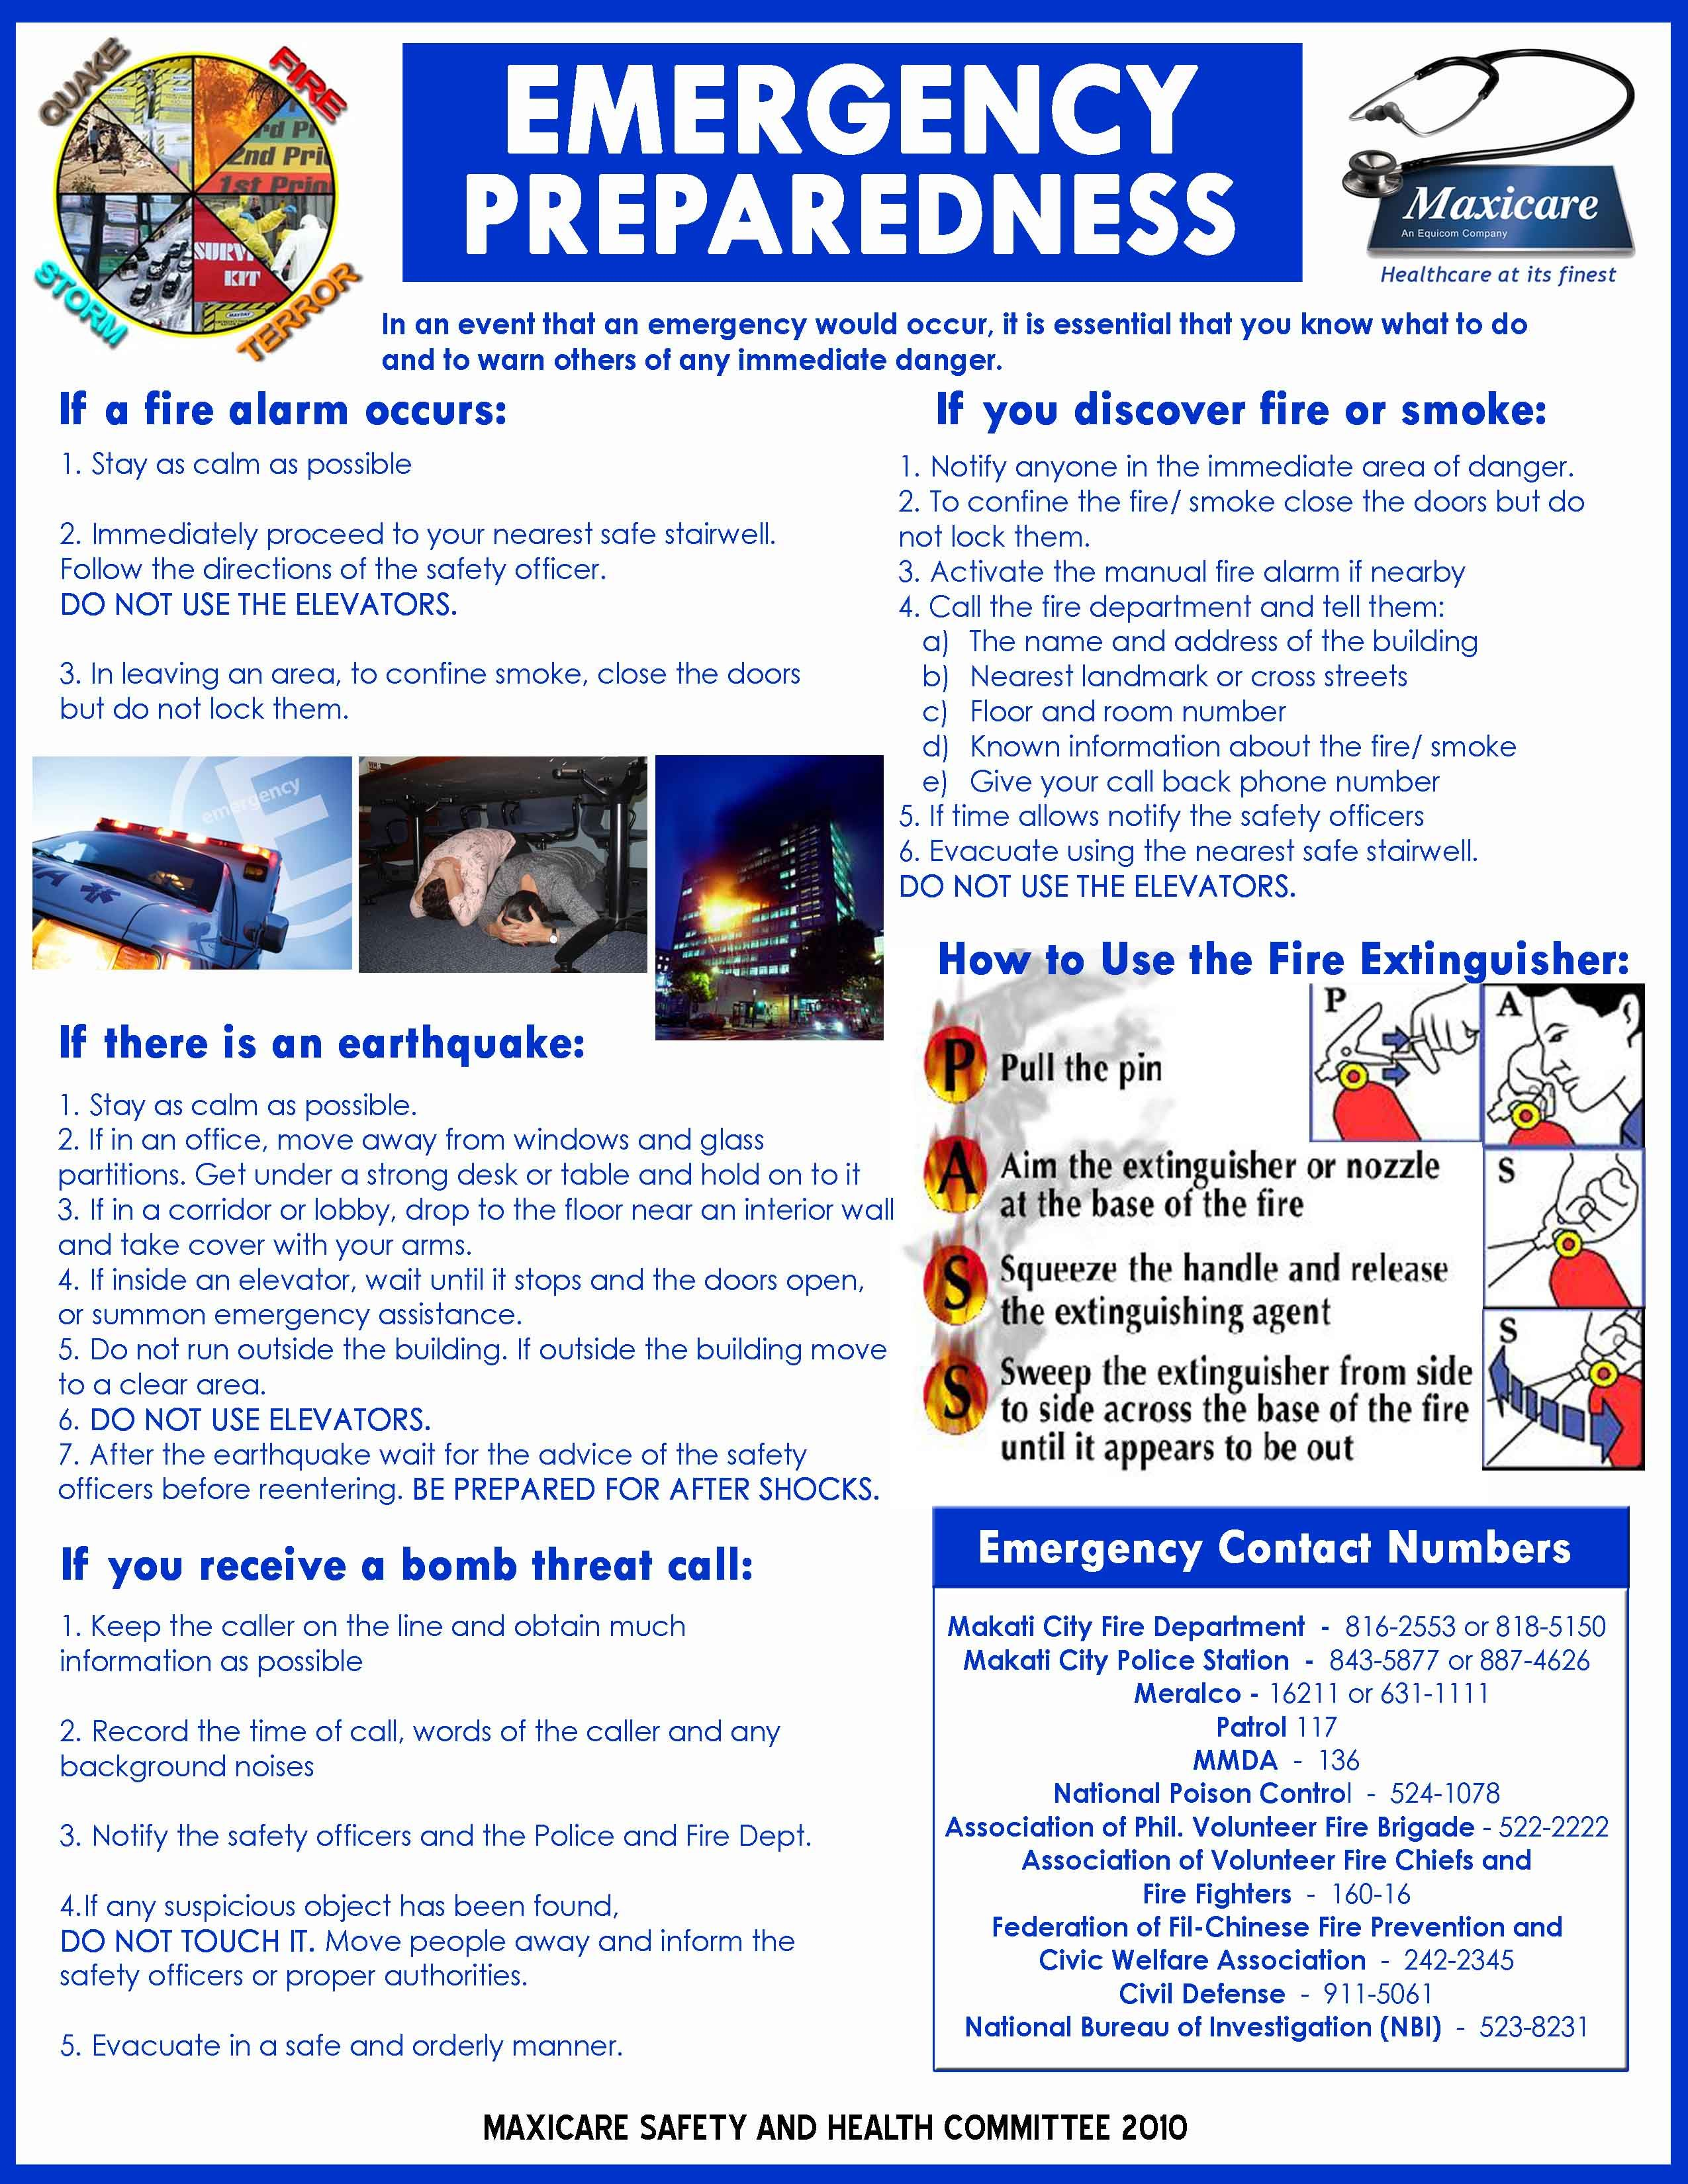 Emergency Preparedness Info From A Company